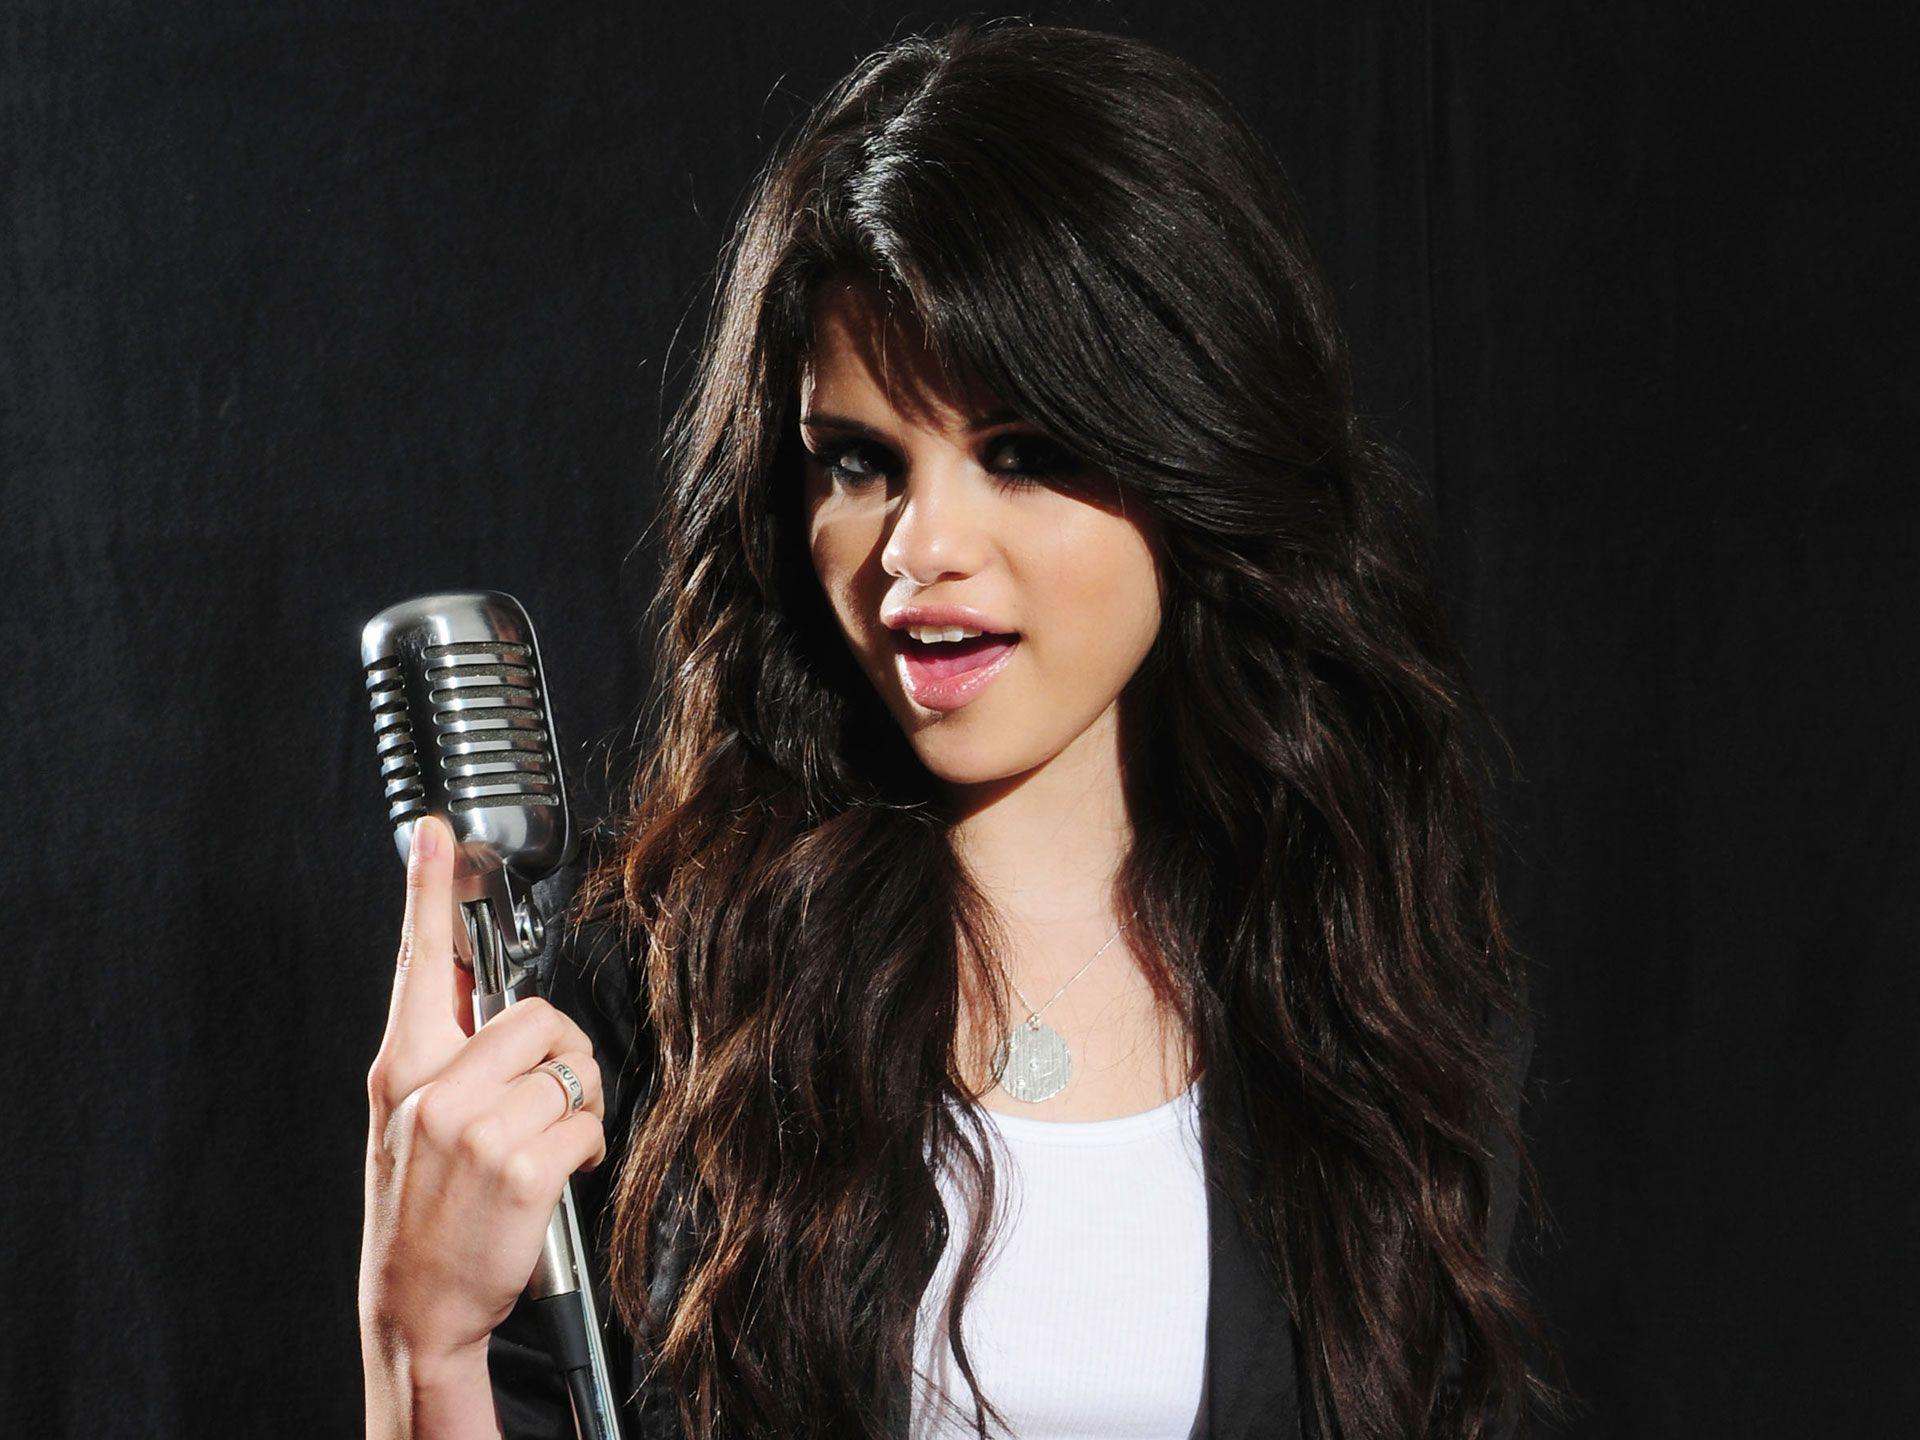 Selena Gomez Wallpapers - Page 4 - HD Wallpapers